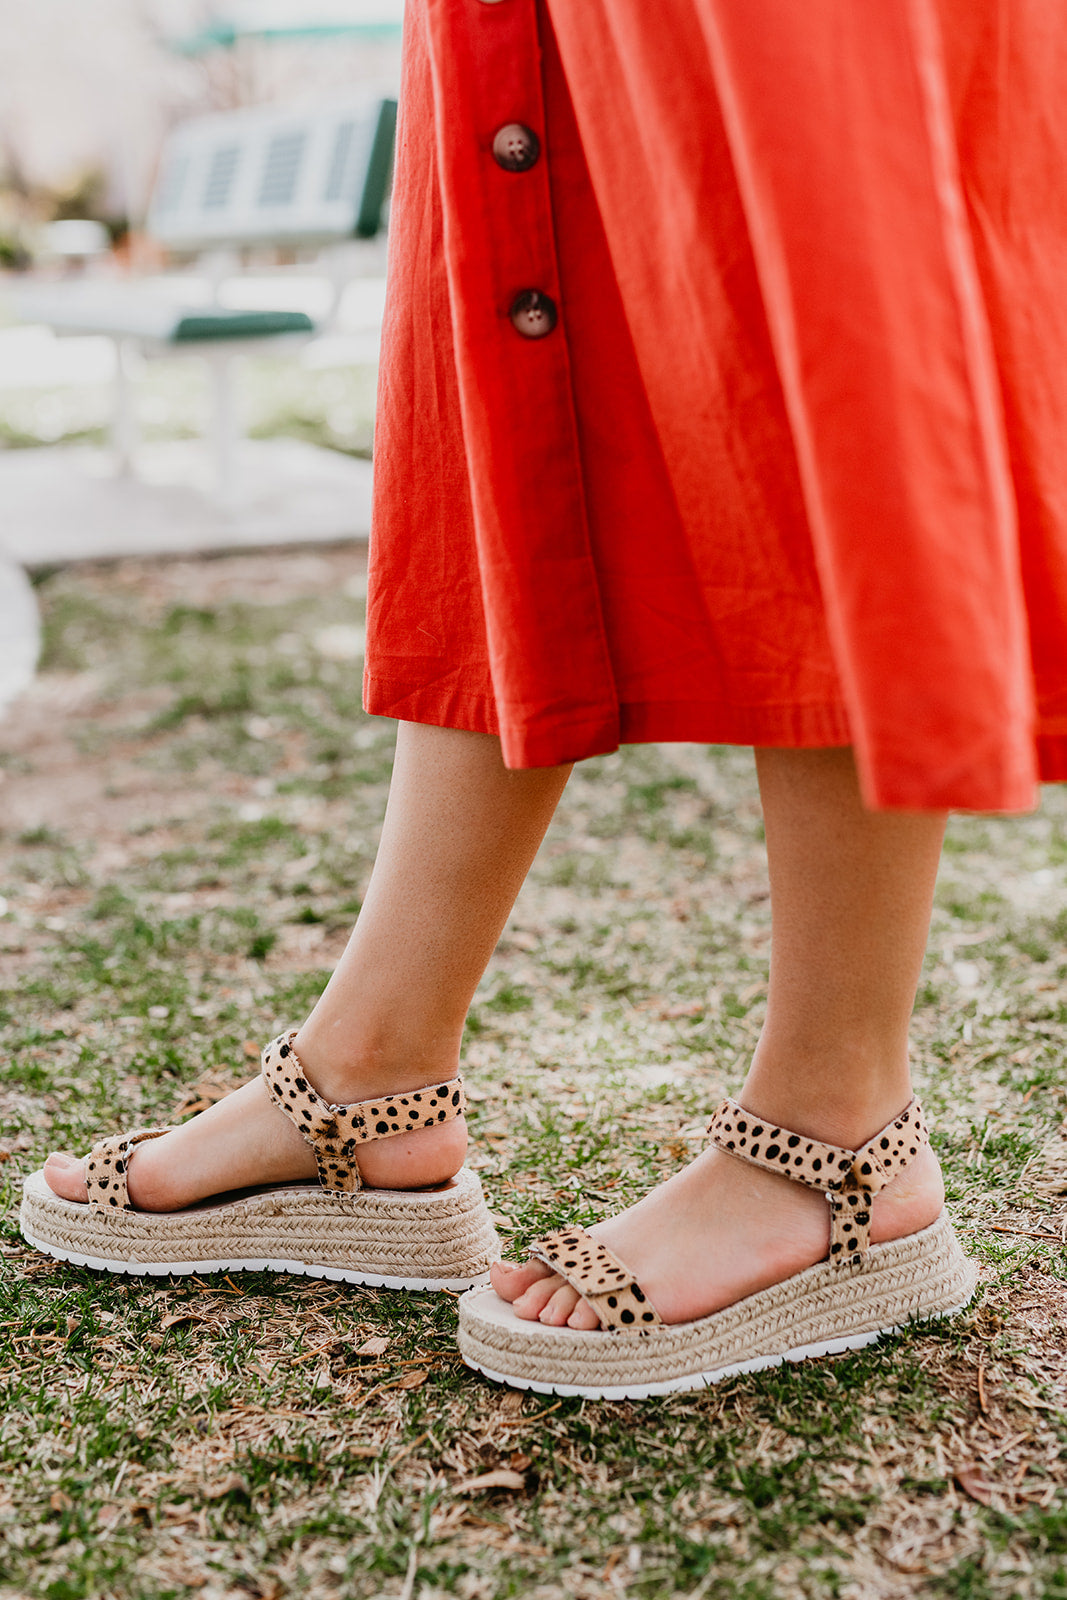 THE MYRA SANDALS IN LEOPARD BY DOLCE VITA